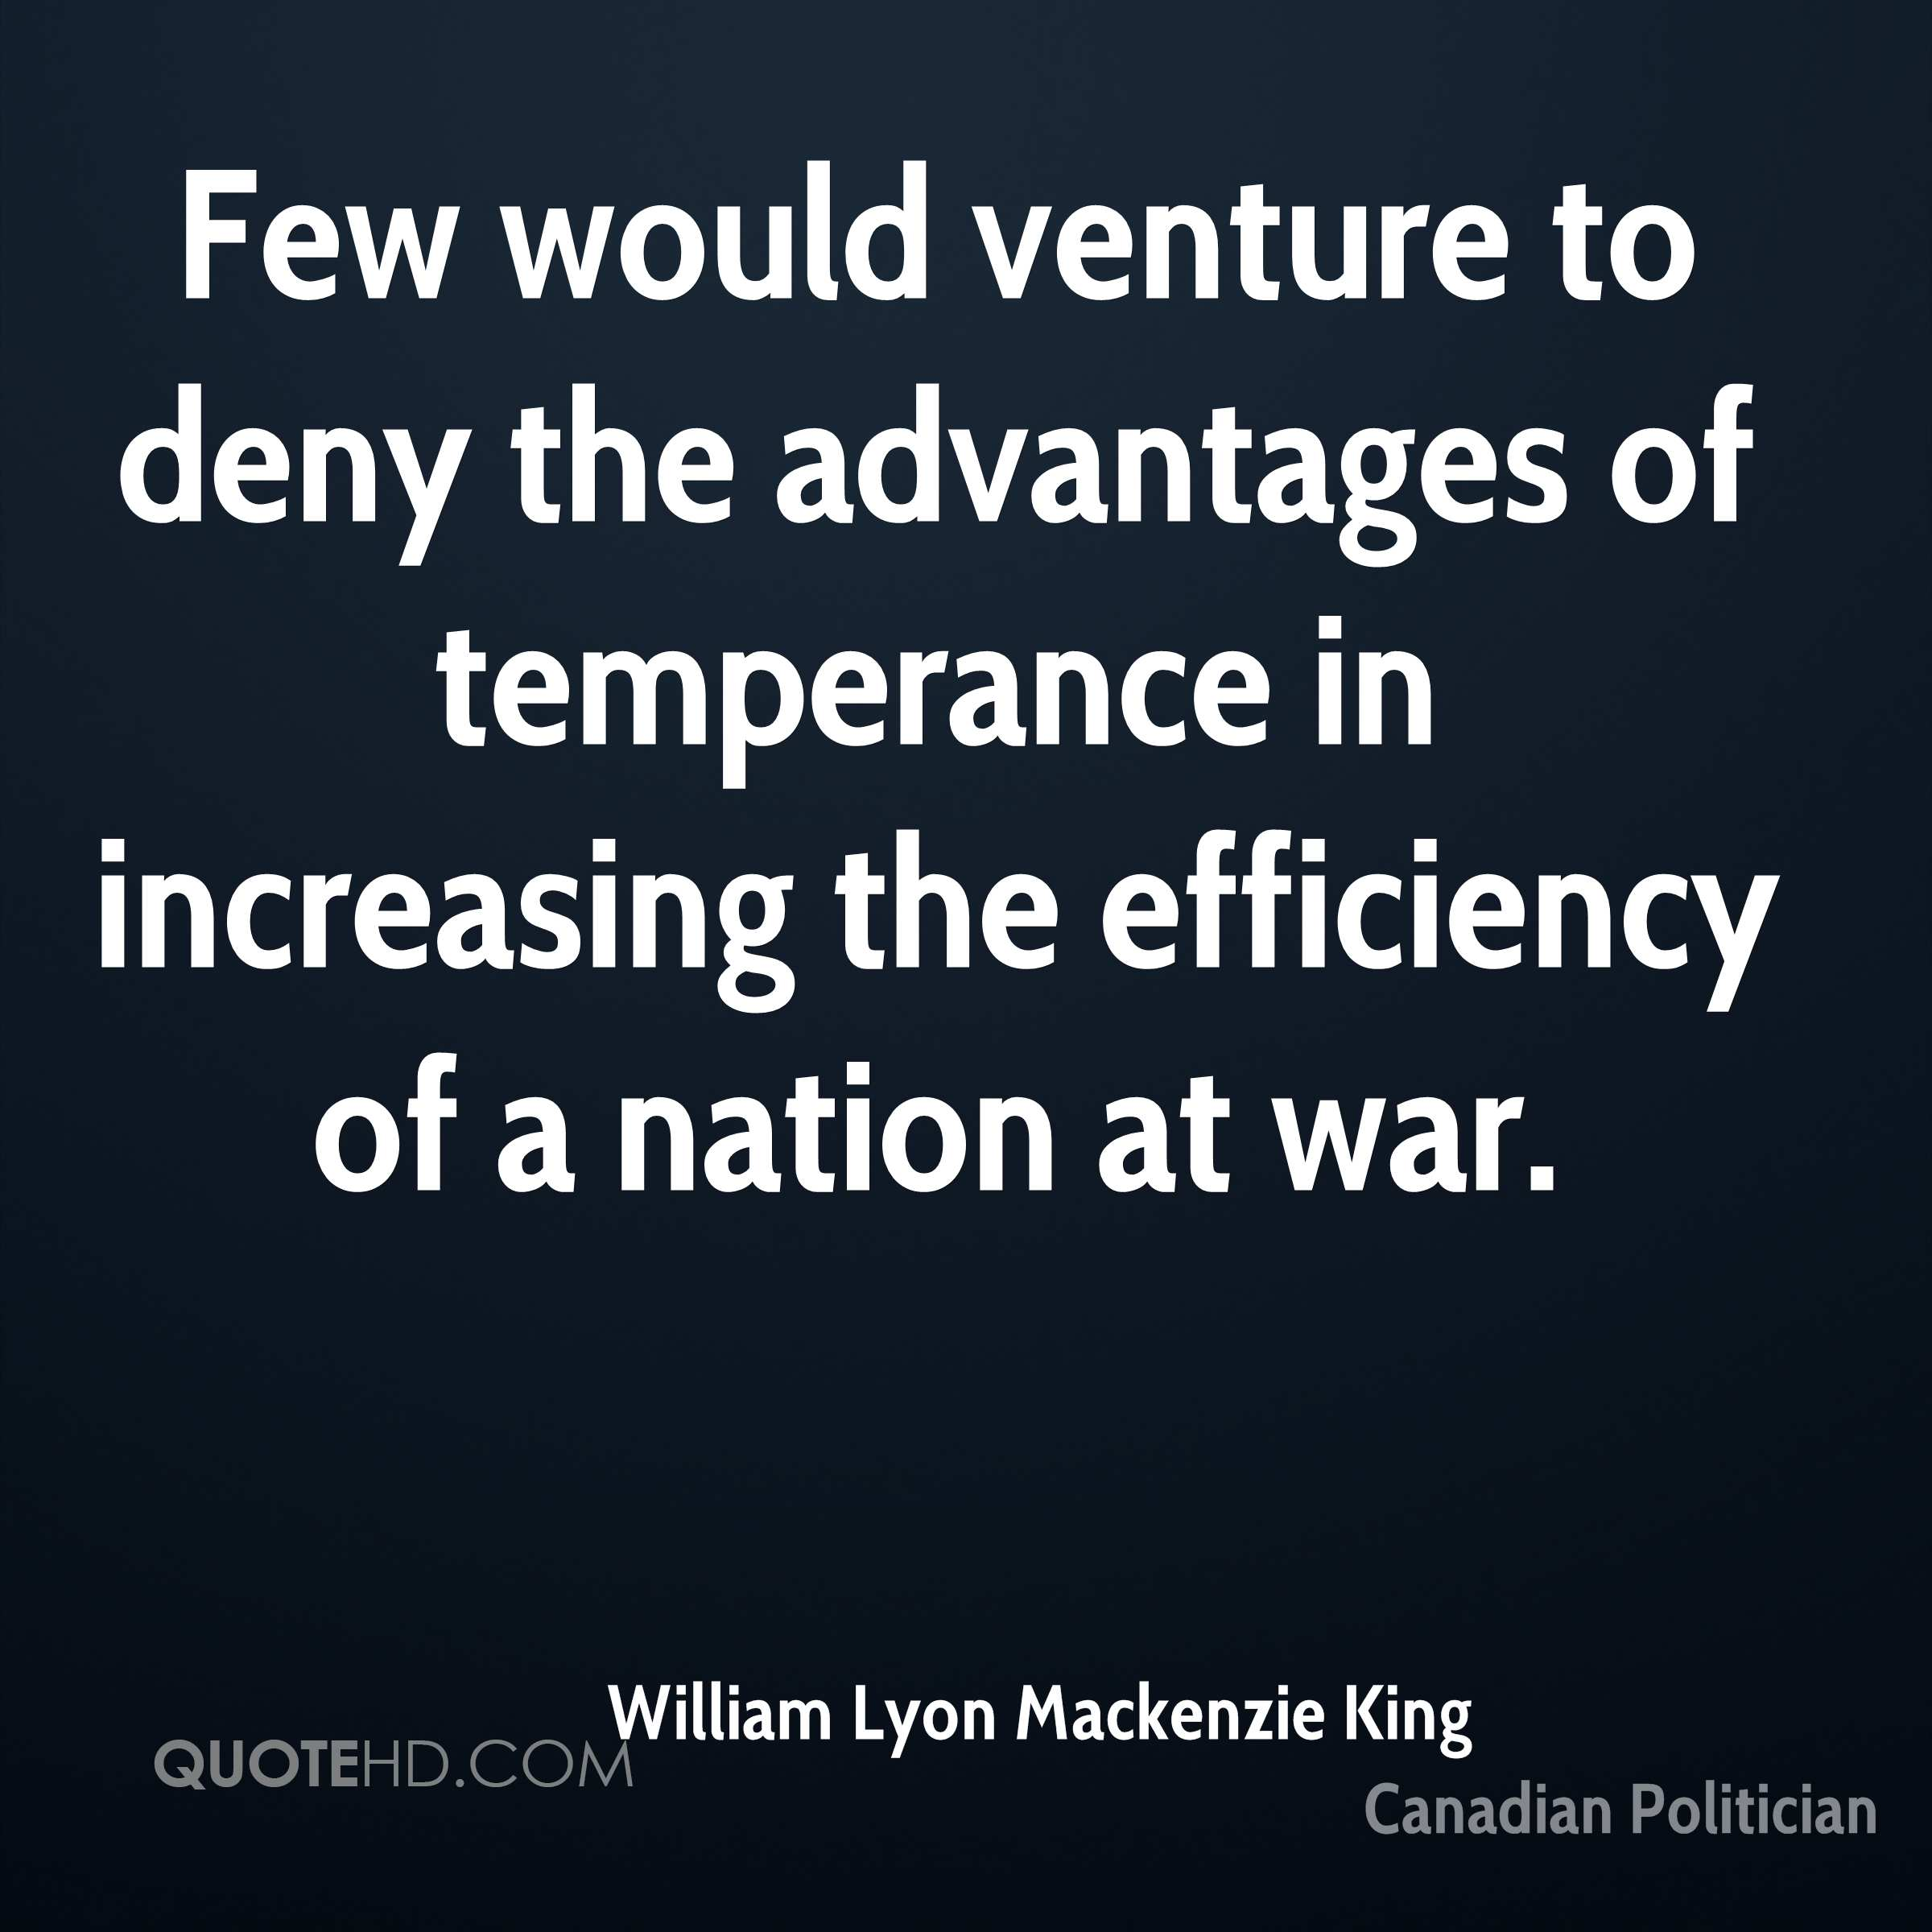 Few would venture to deny the advantages of temperance in increasing the efficiency of a nation at war.